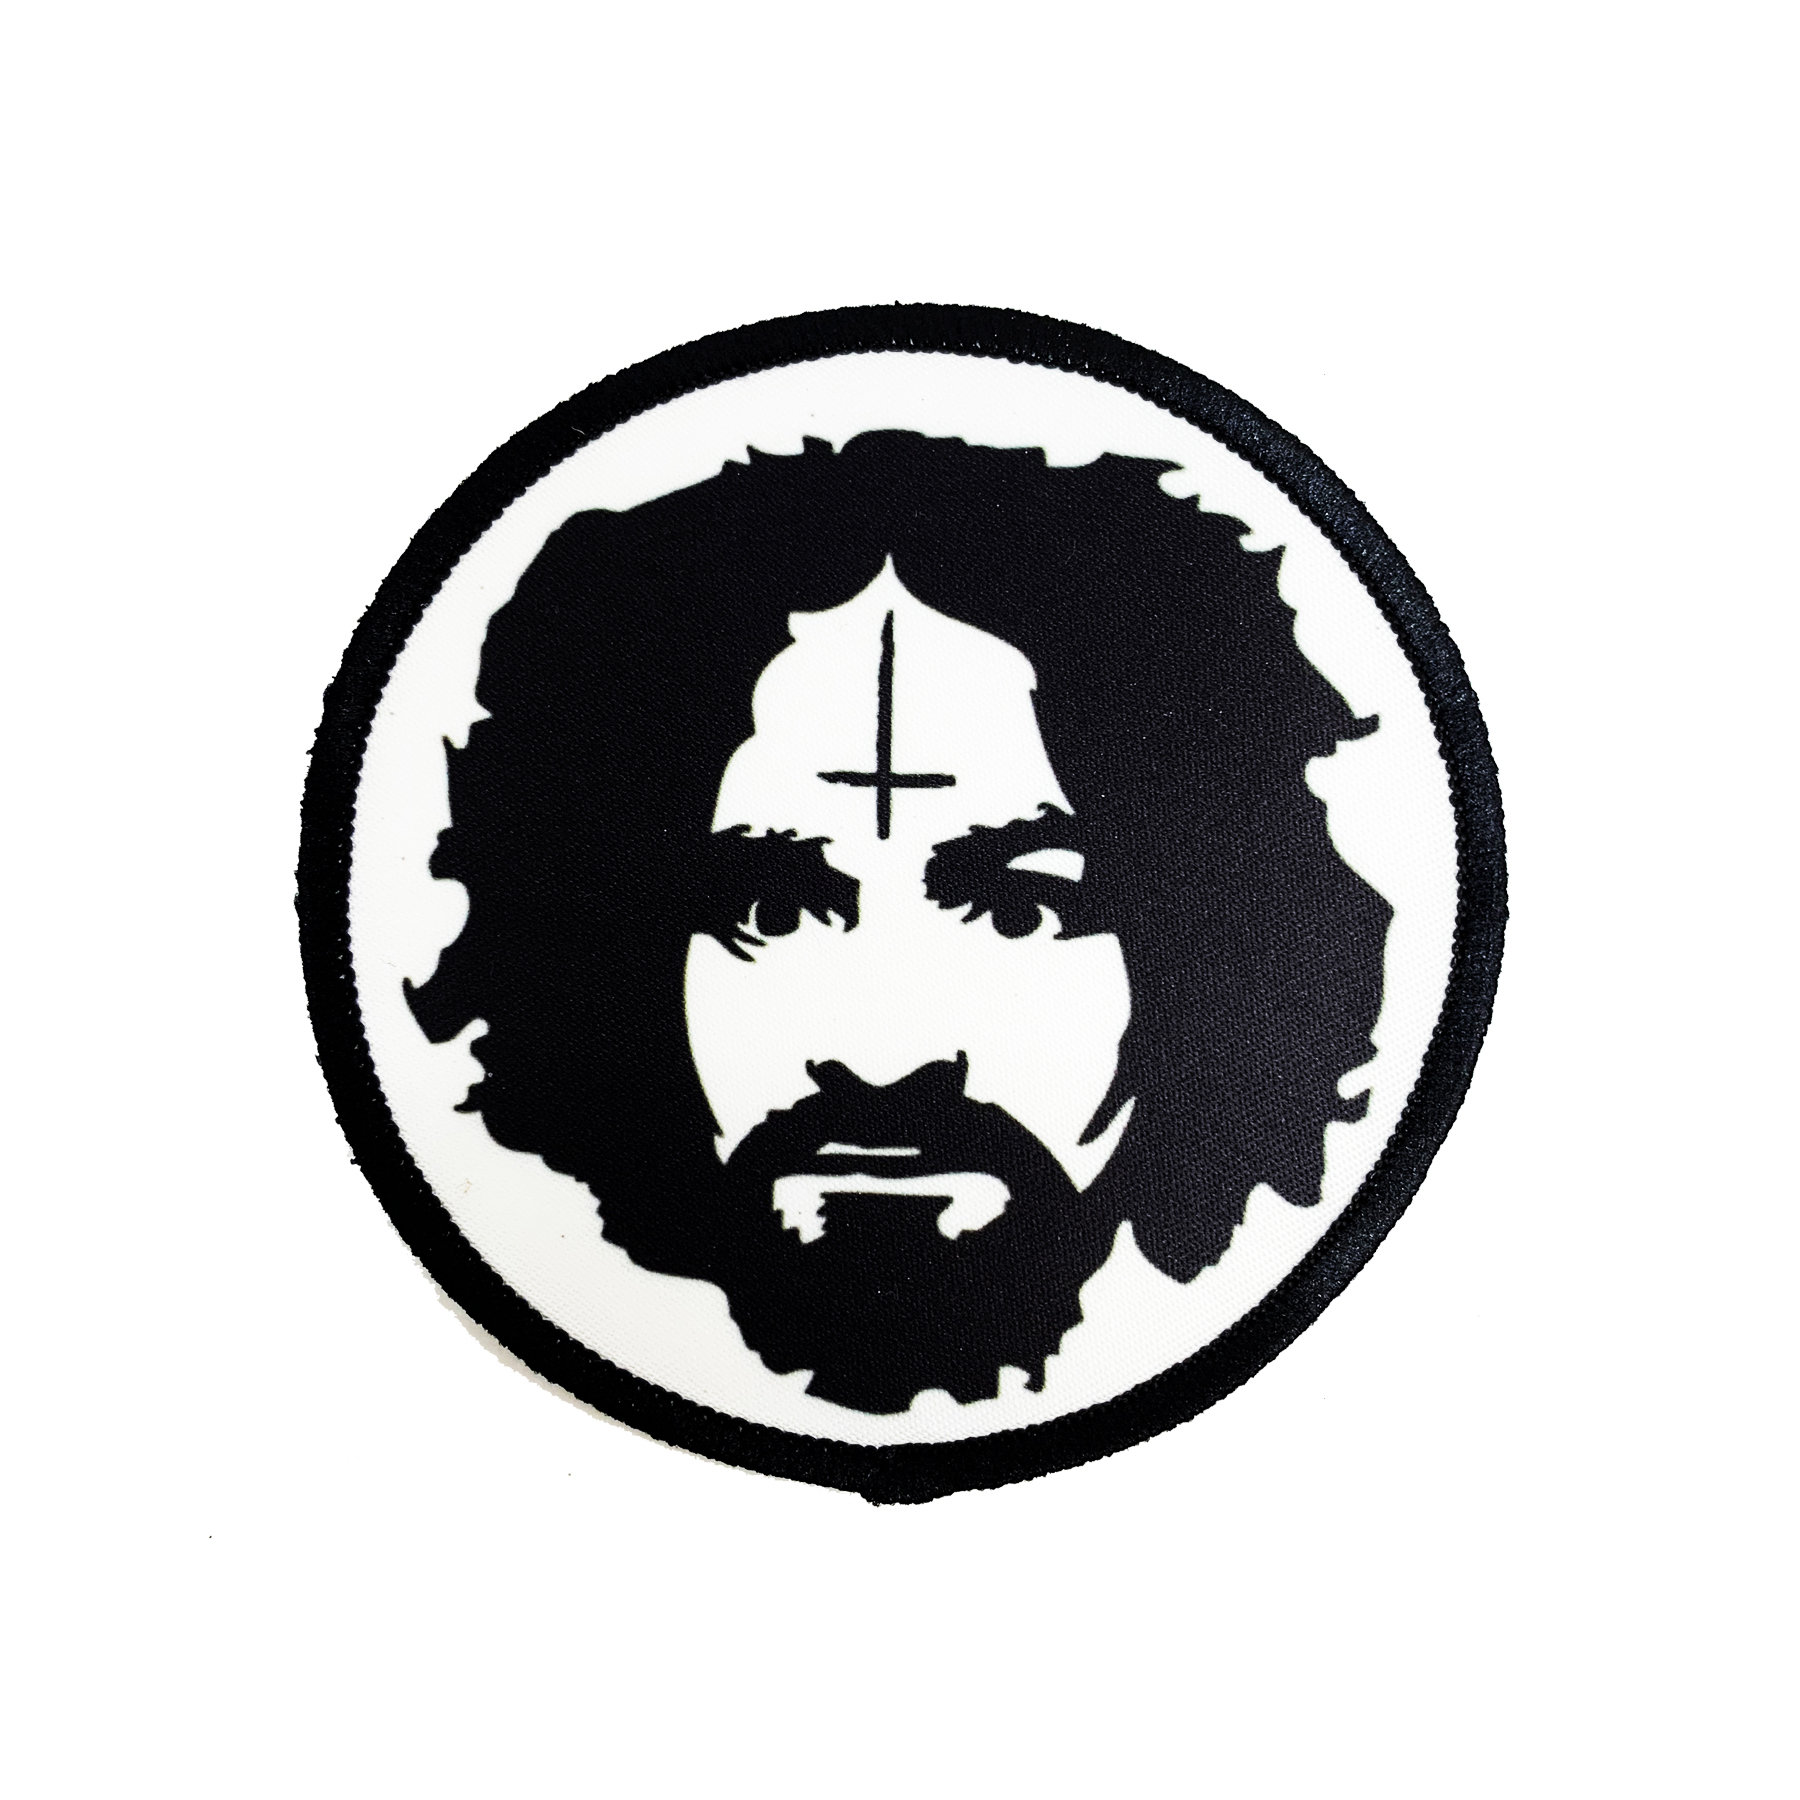 1800x1800 charles manson patch charlie manson iron on patch satan manson etsy